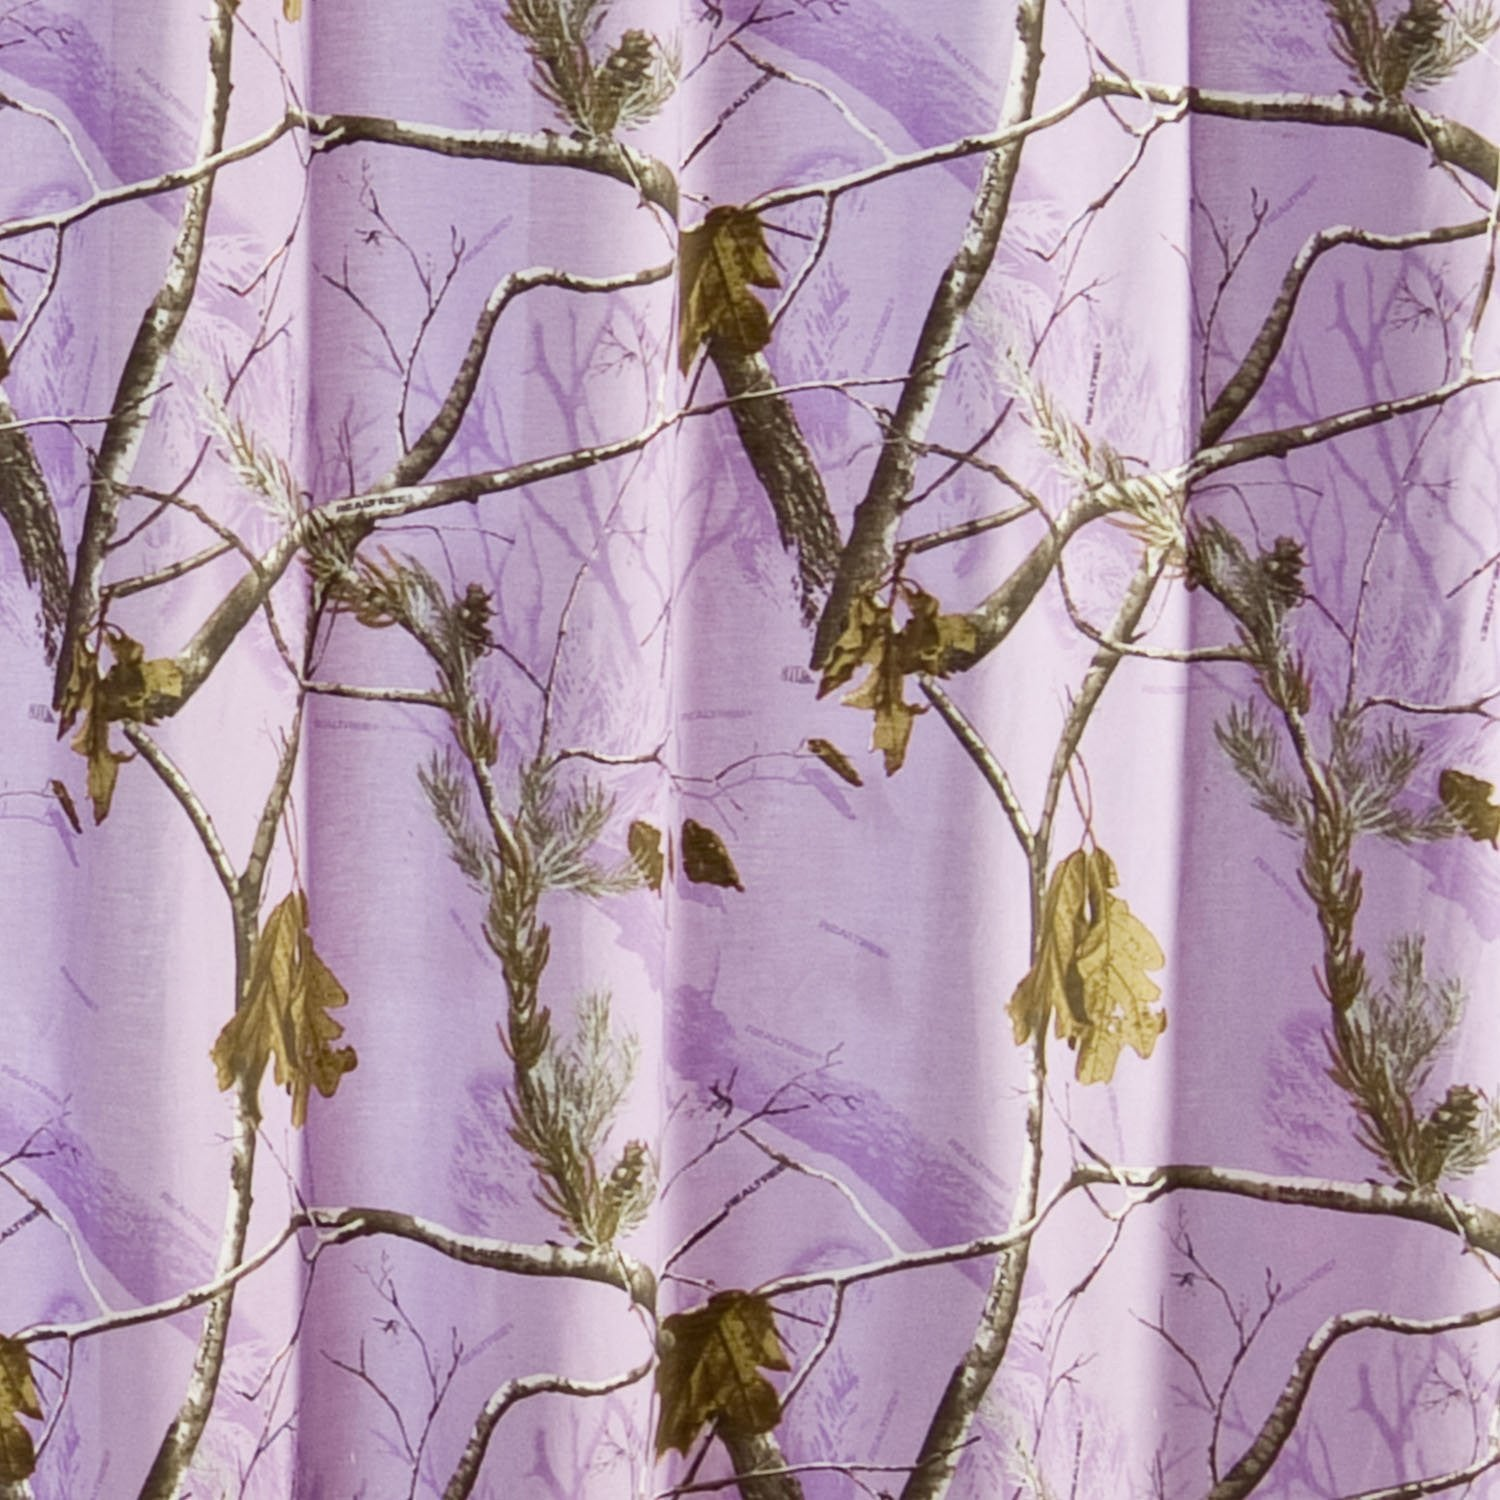 Kimlor Mills Realtree APC Shower Curtain, Lavender - Back40Trading2